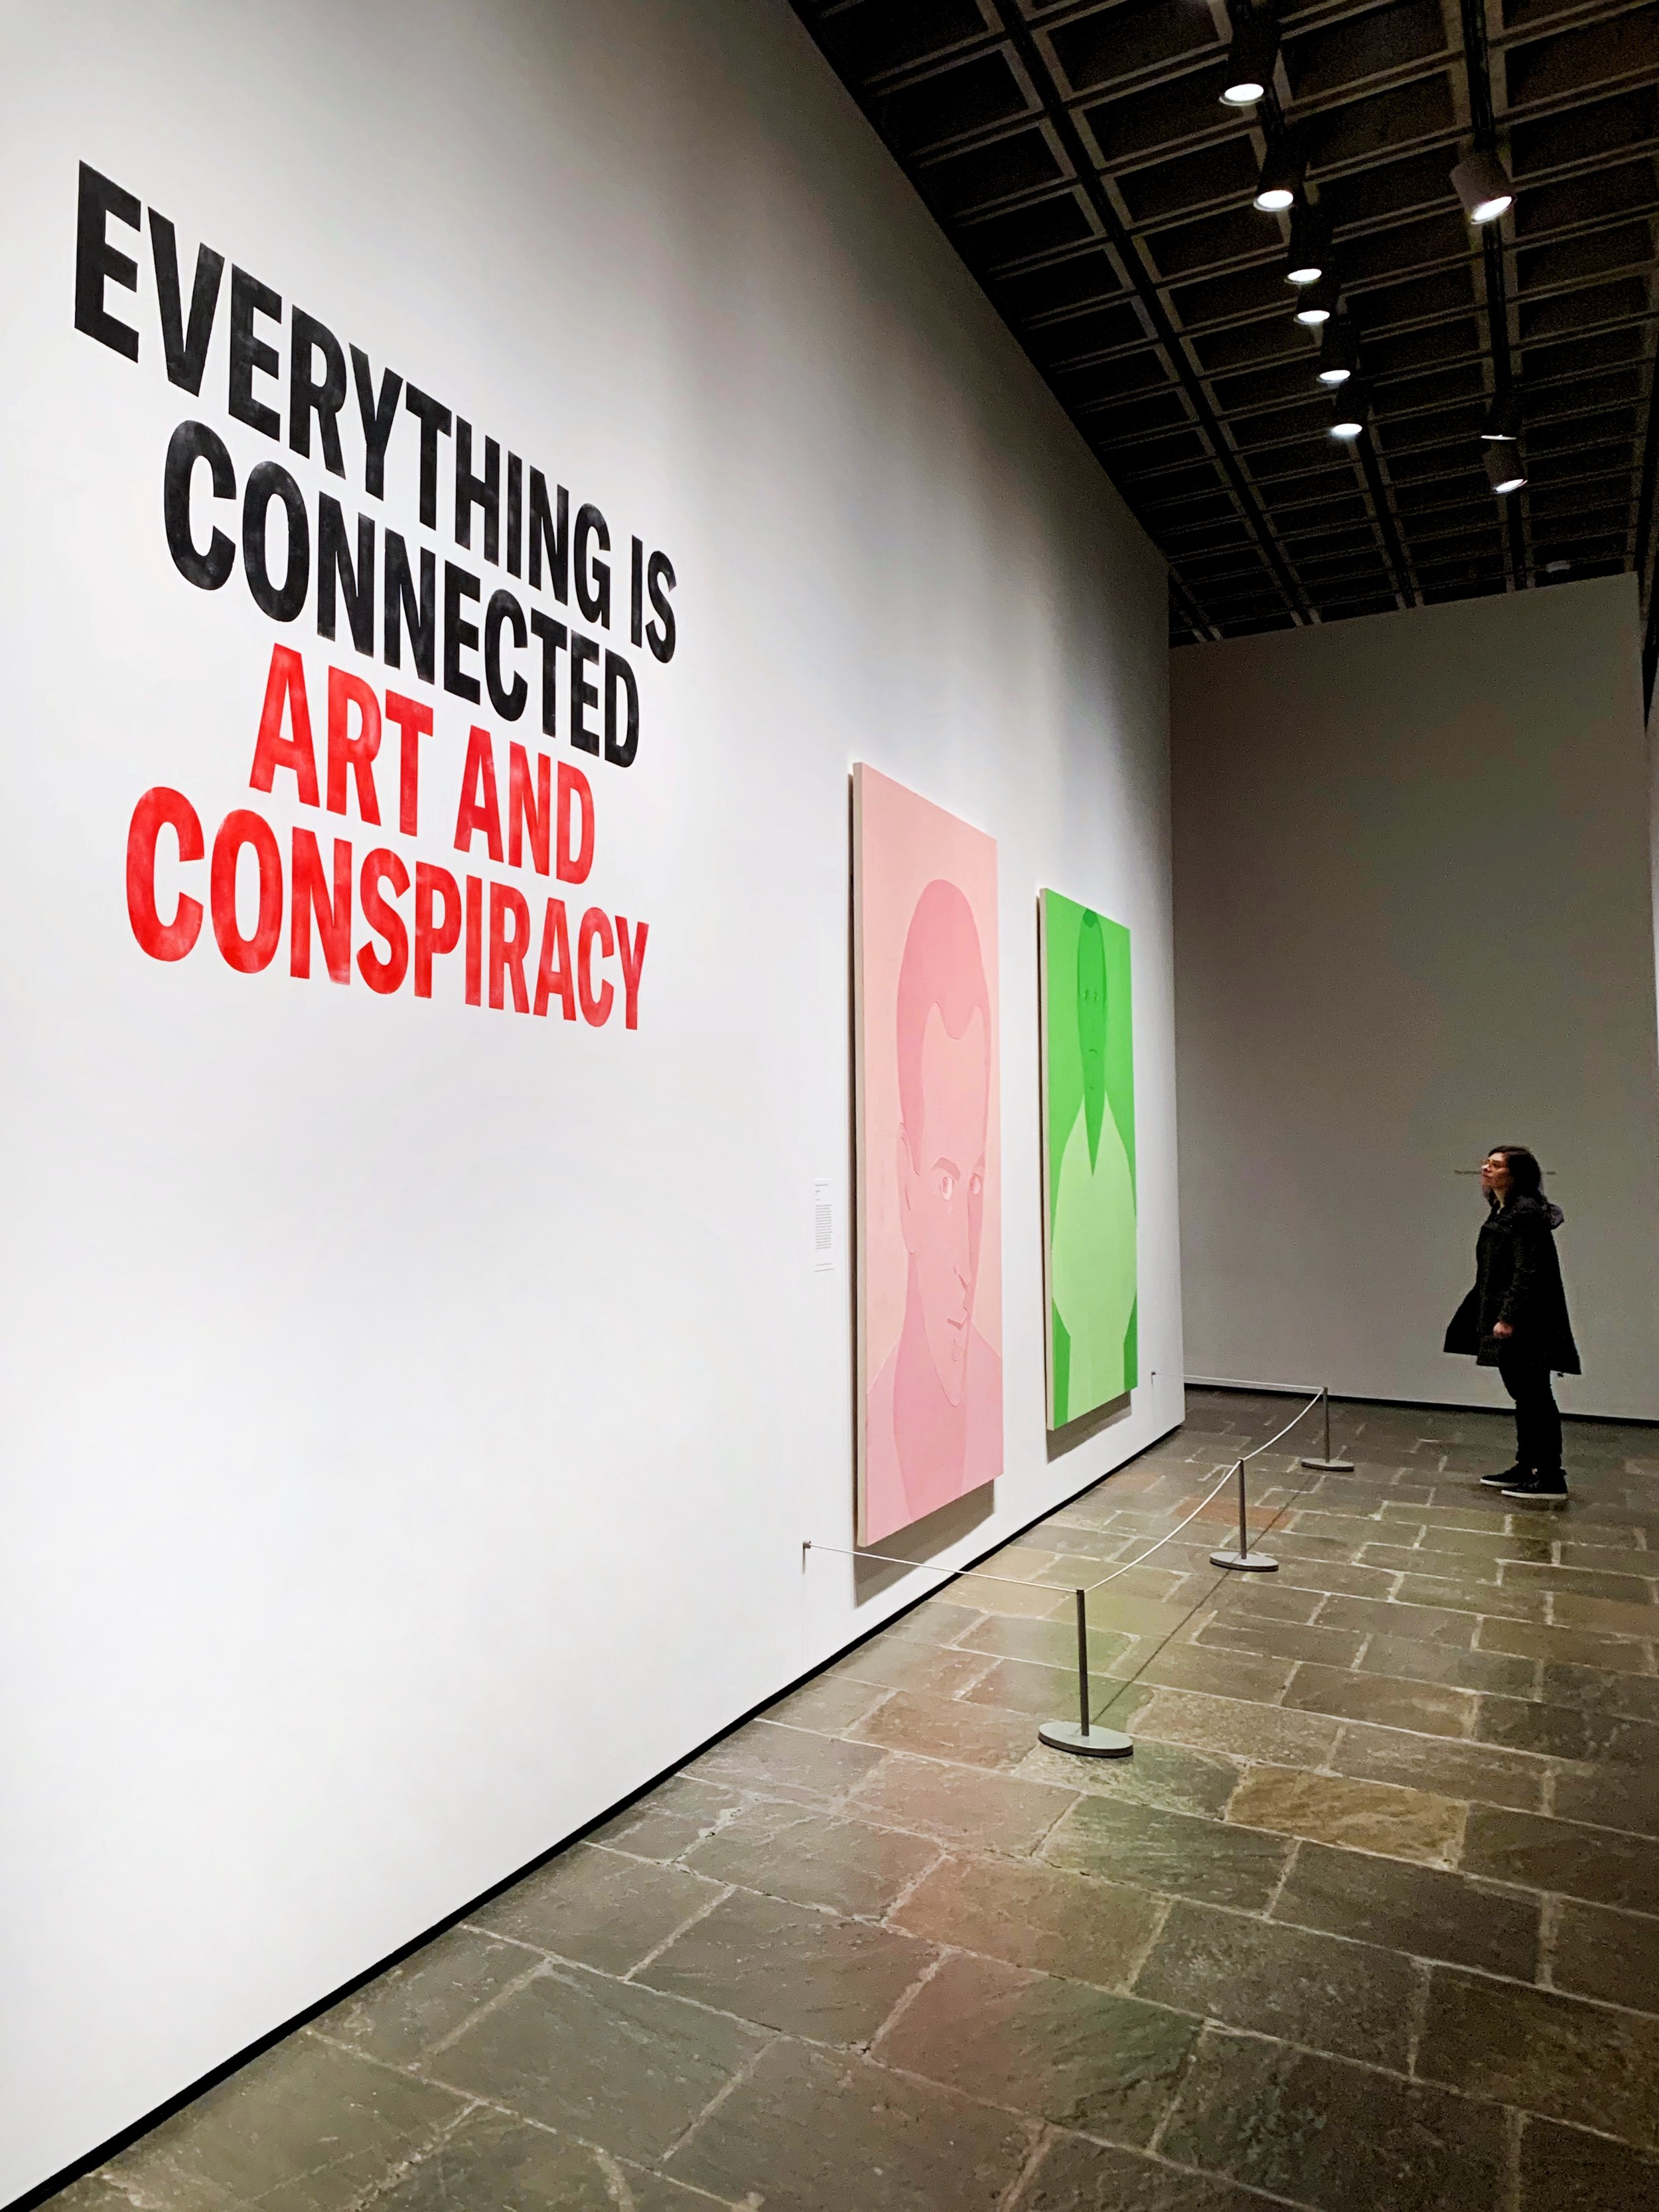 The entrance to Everything is  Connected: Art and Conspiracy  at the Met Breuer, running through January 6, 2019